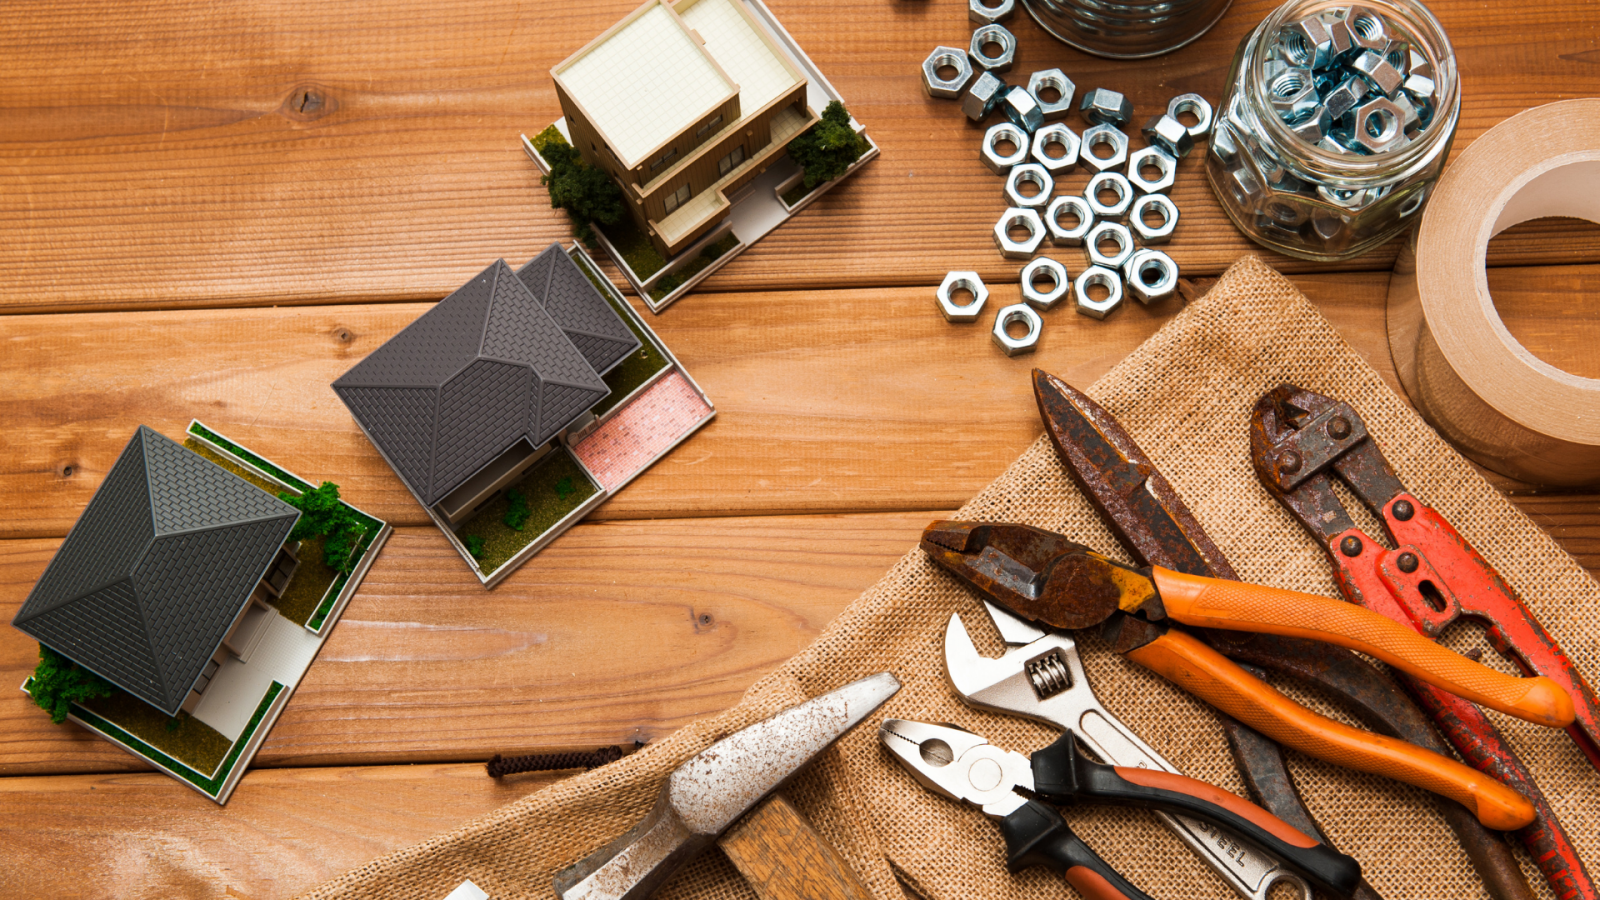 Best gifts for diyers and handymen